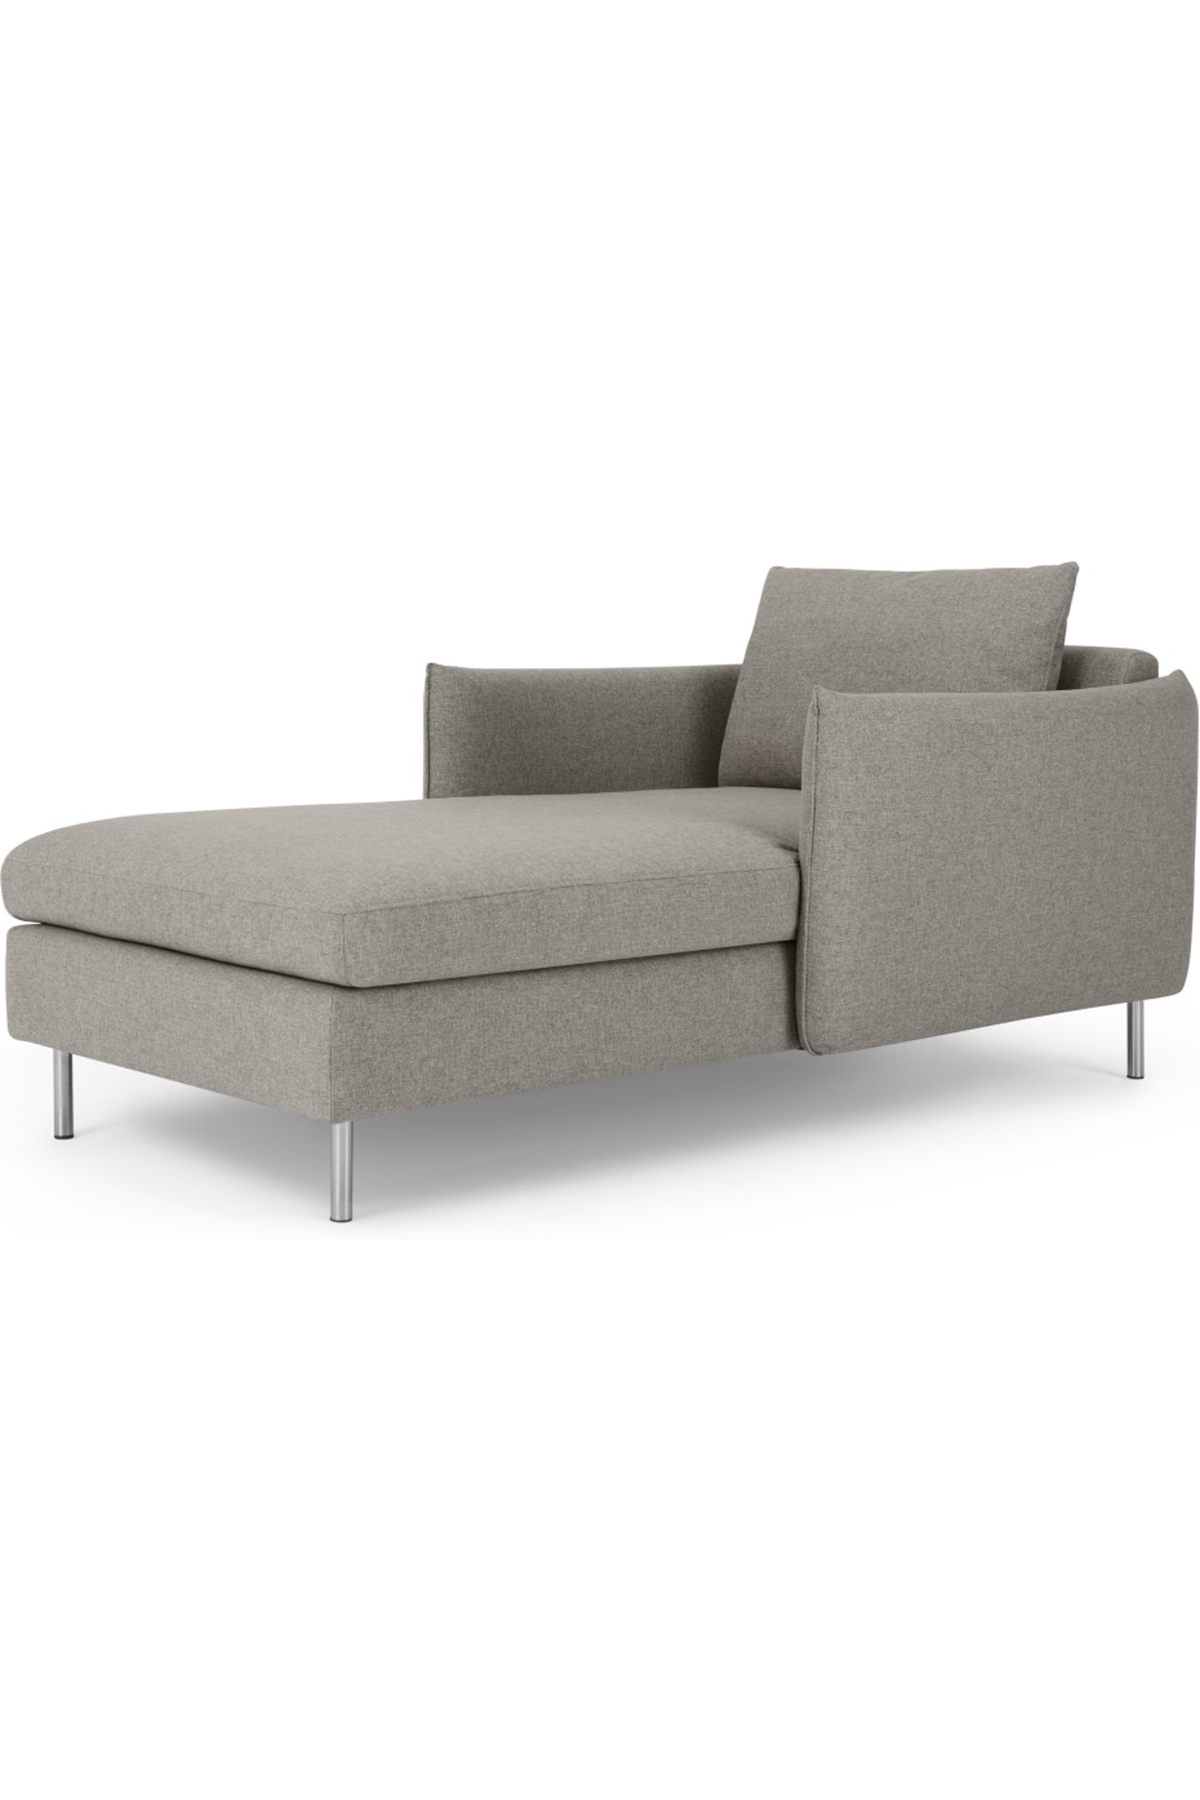 Vento Chaise Longue Manhattan Grey Chaise Longue Cosy Reading Corner Grey